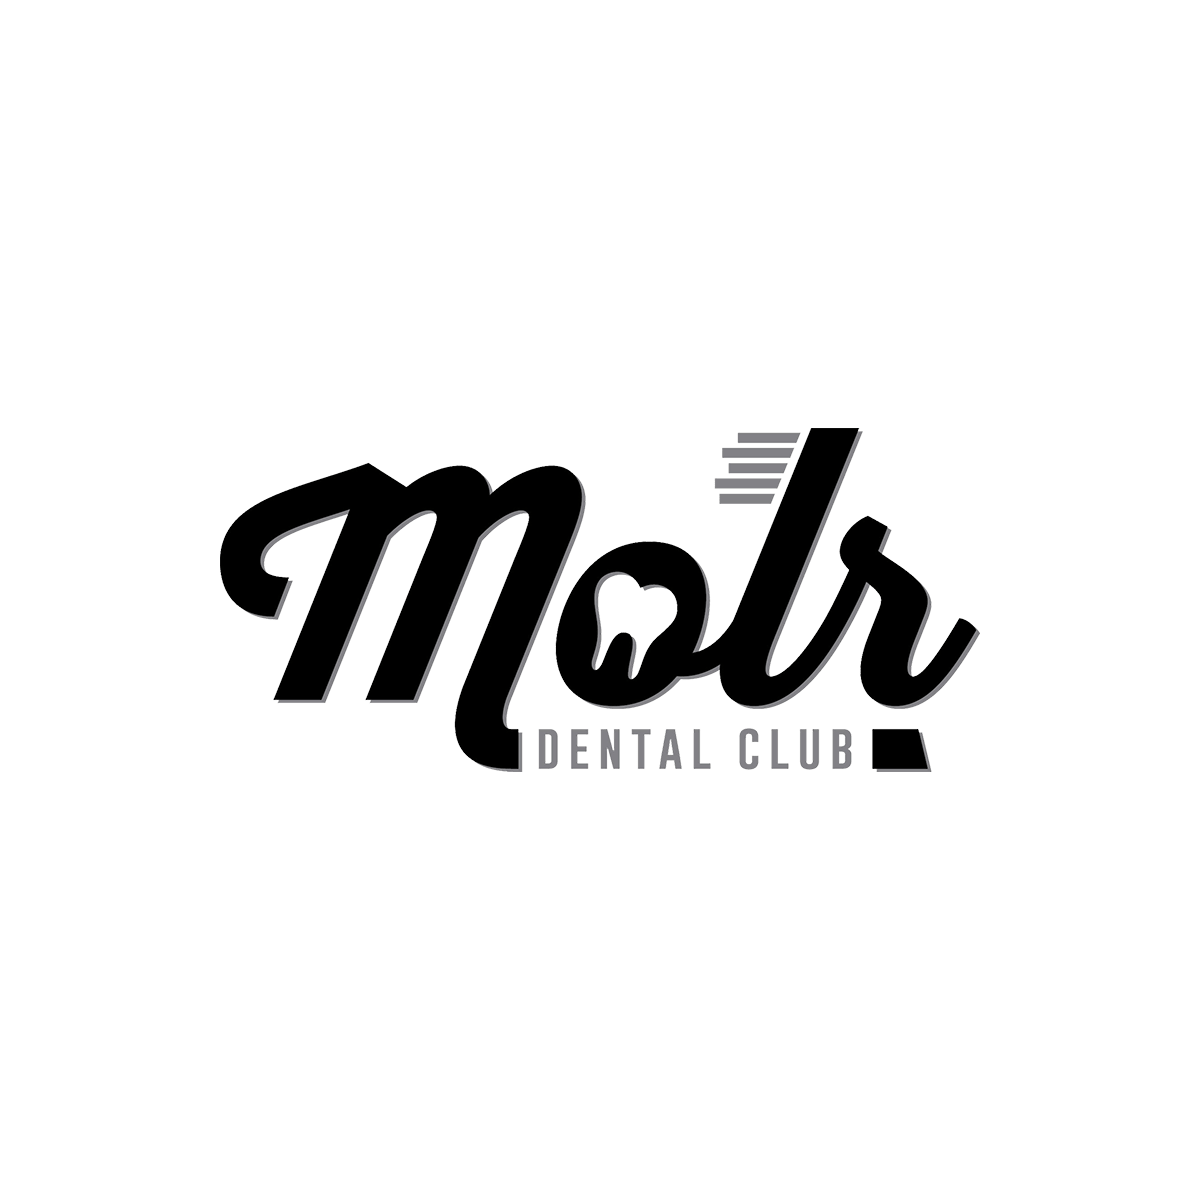 Molr Dental Club Promo Code For 35% Off Your First